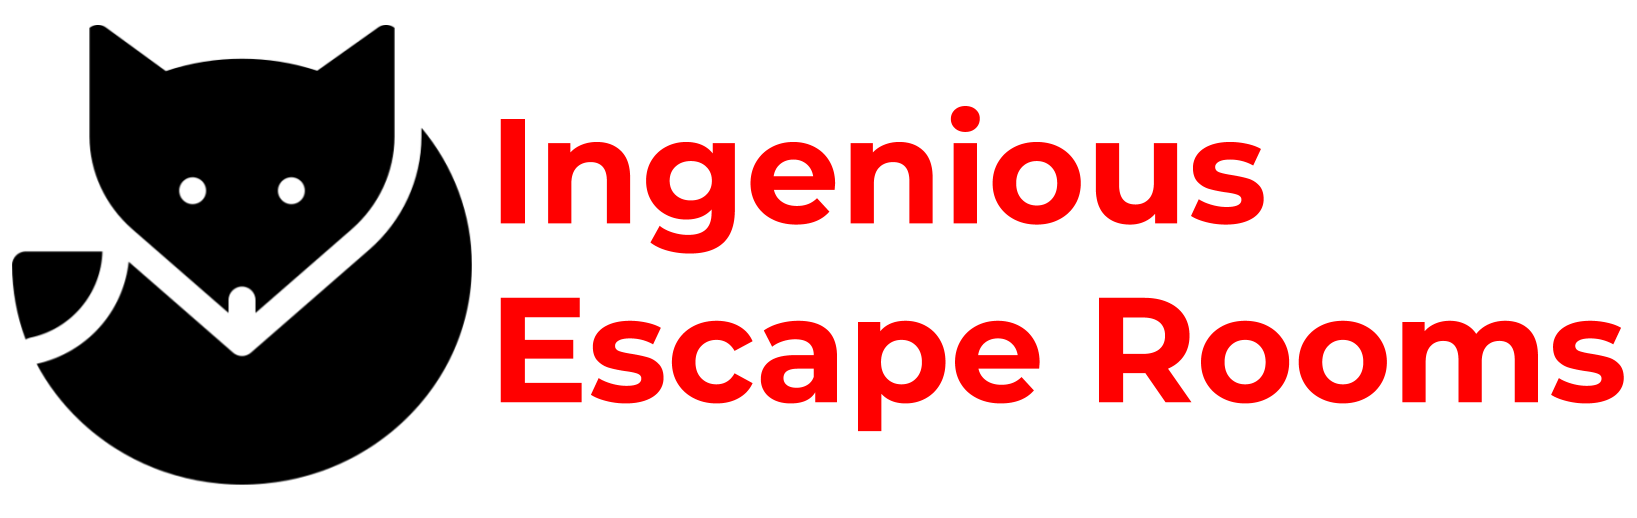 Ingenious Escape Rooms |   Rooms – Grid – No Margins